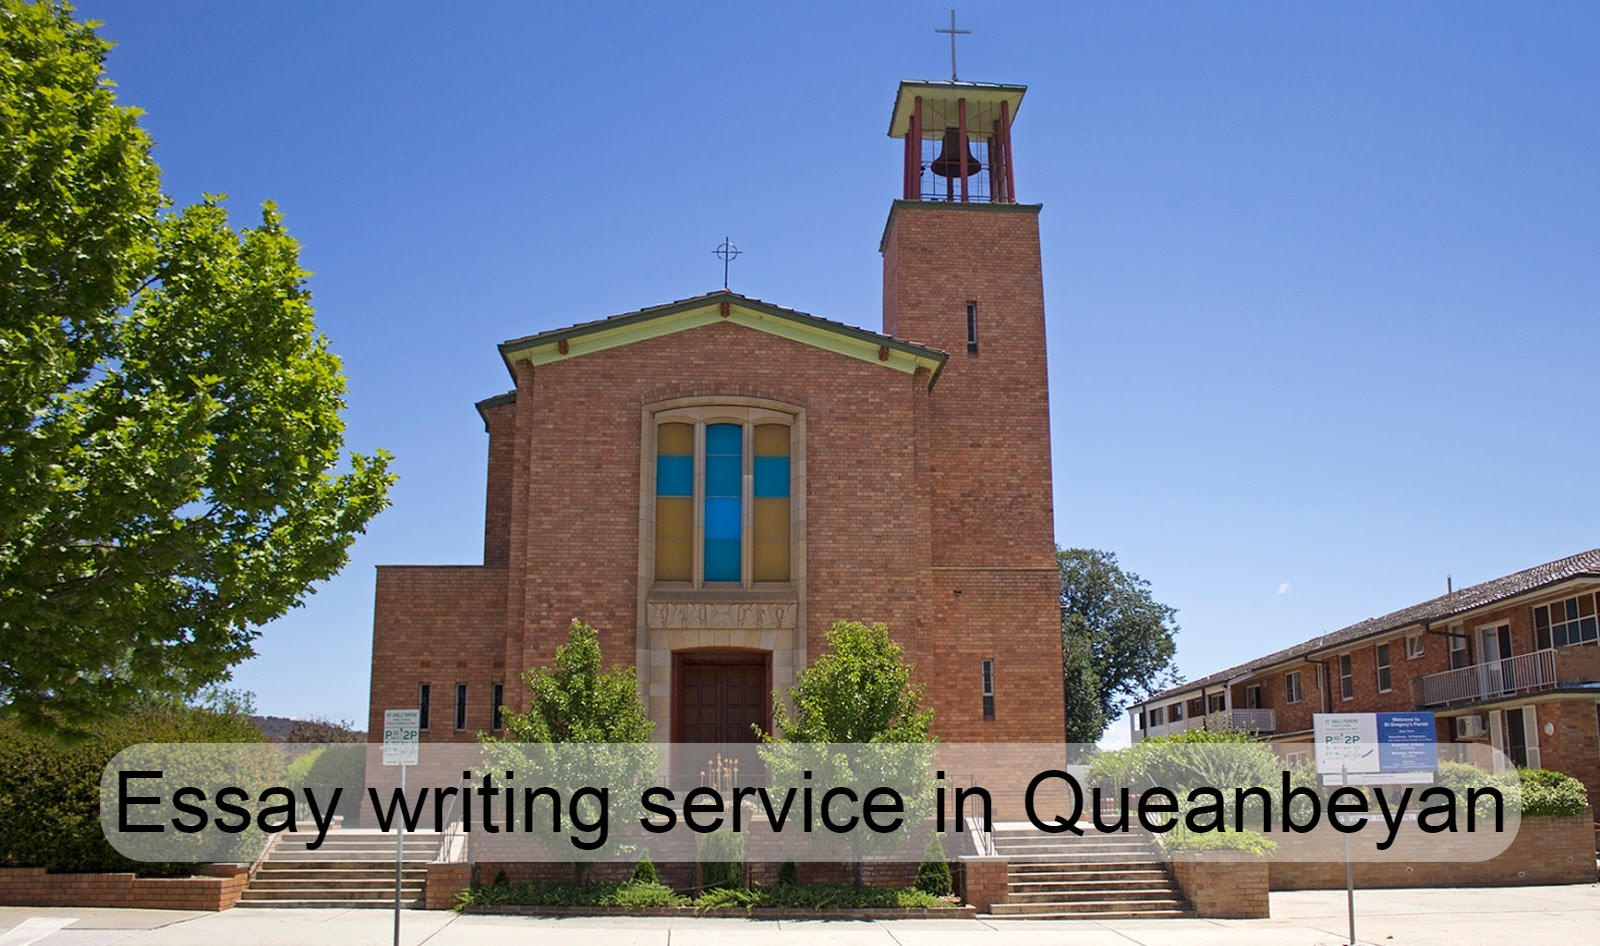 Essay writing service in Queanbeyan